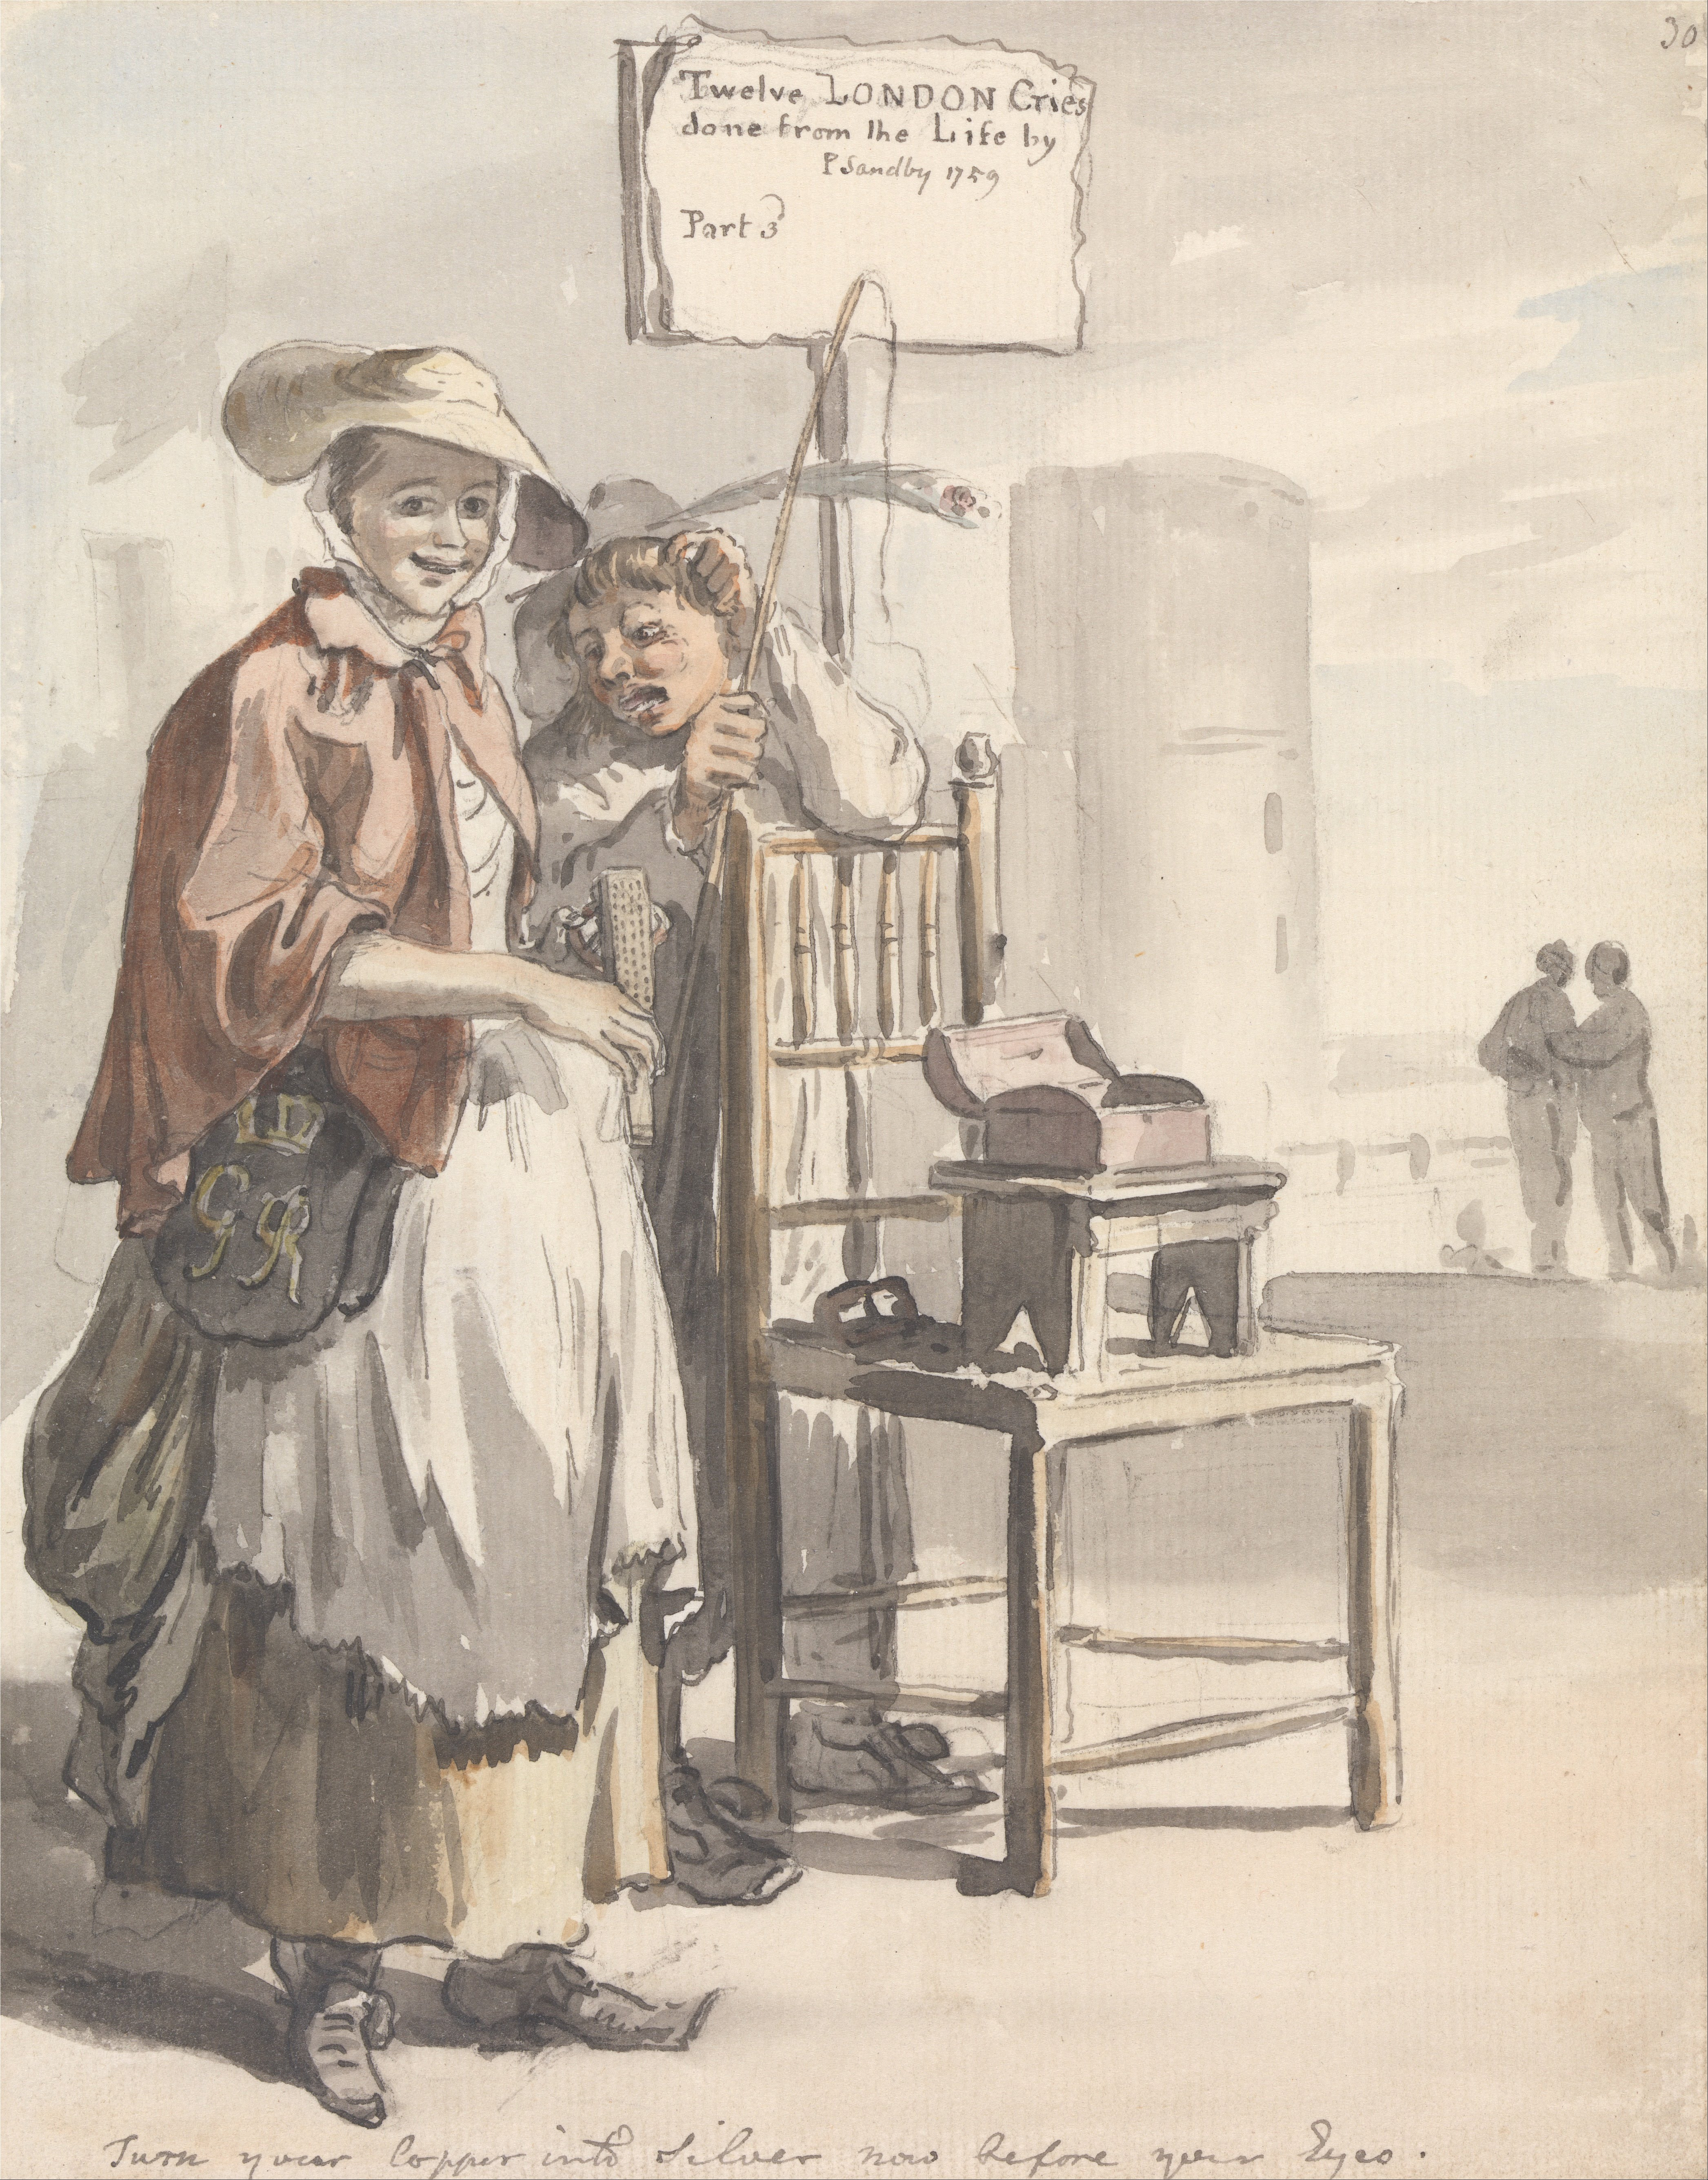 file paul sandby london cries turn your copper into silver now file paul sandby london cries turn your copper into silver now before